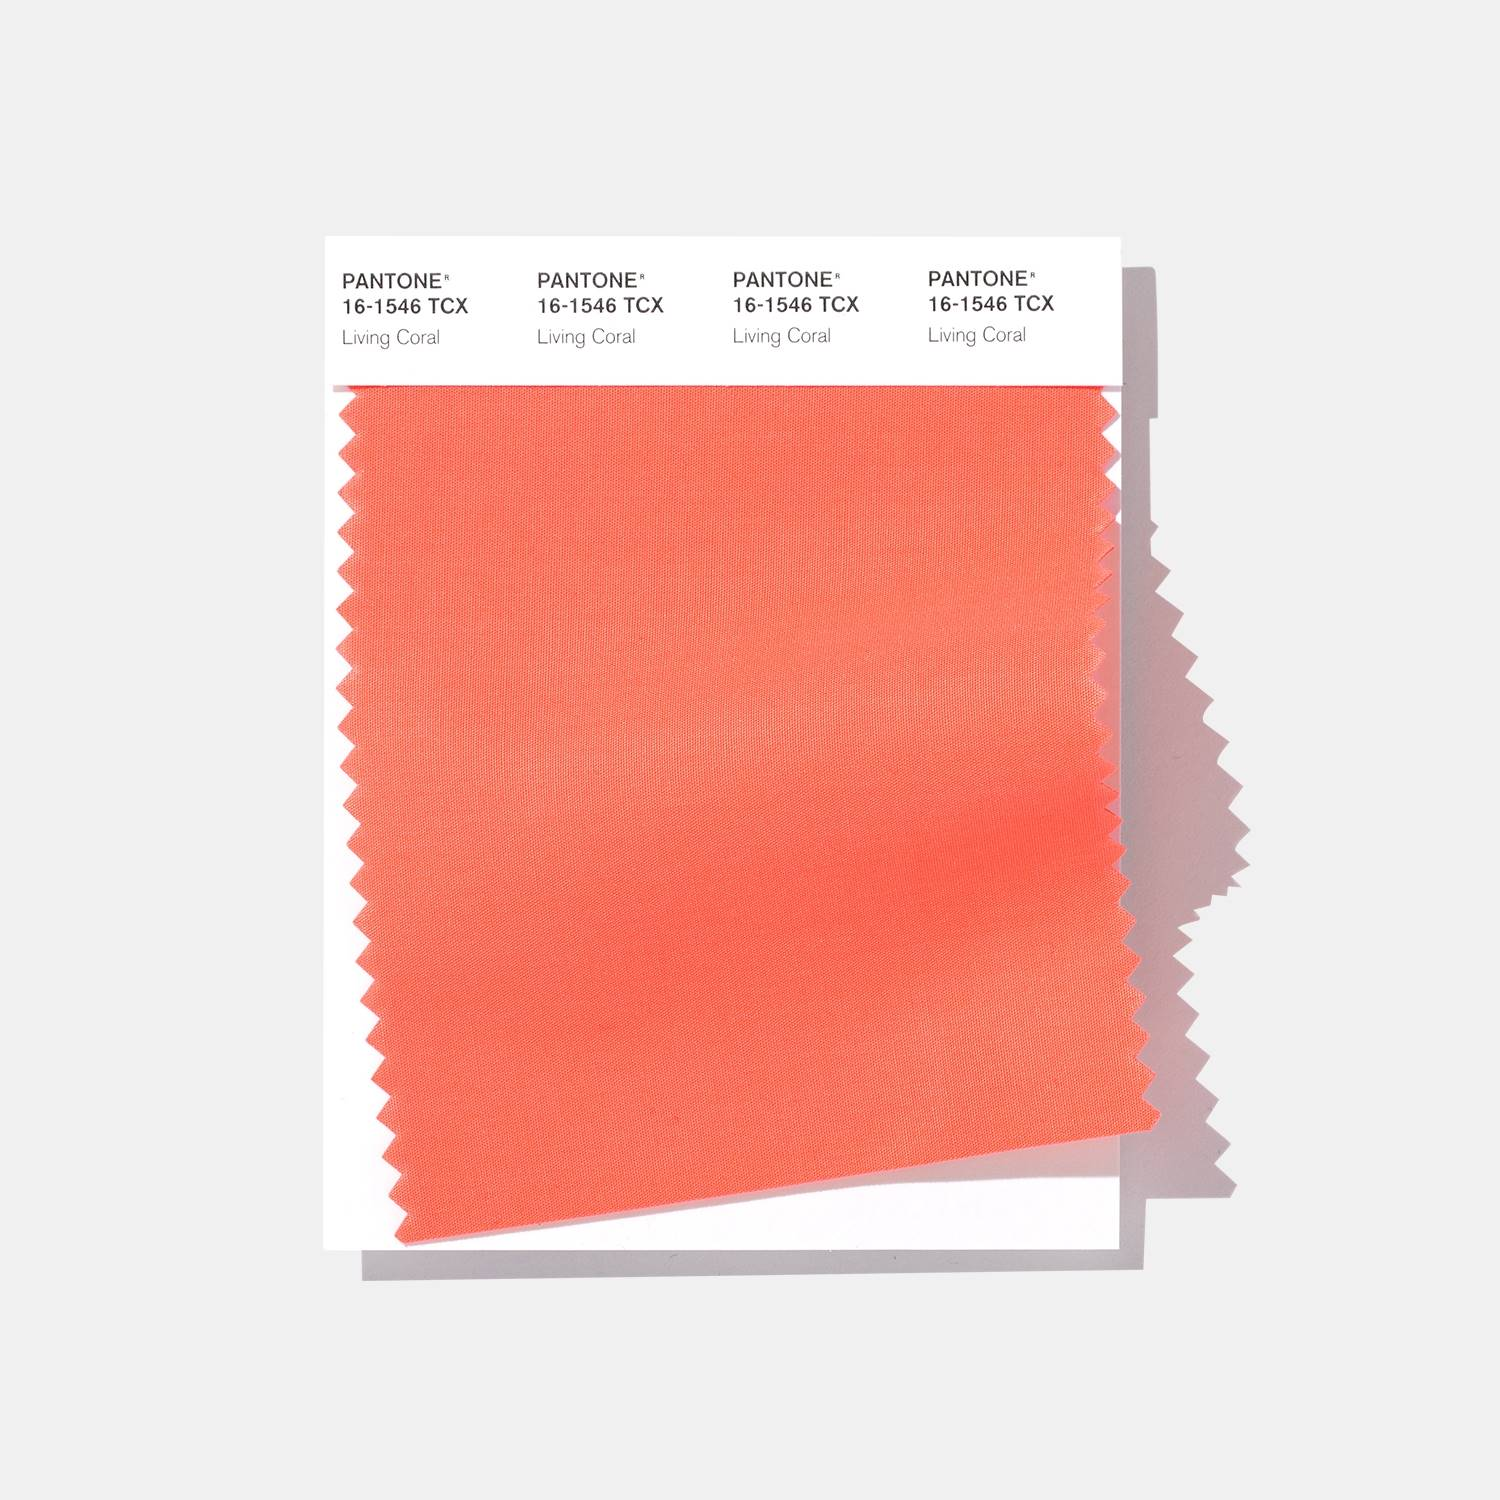 SWCD-pantone-fashion-home-interiors-tcx-cotton-swatch-color-of-the-year-2019-living-coral. ¿Qué transmite?